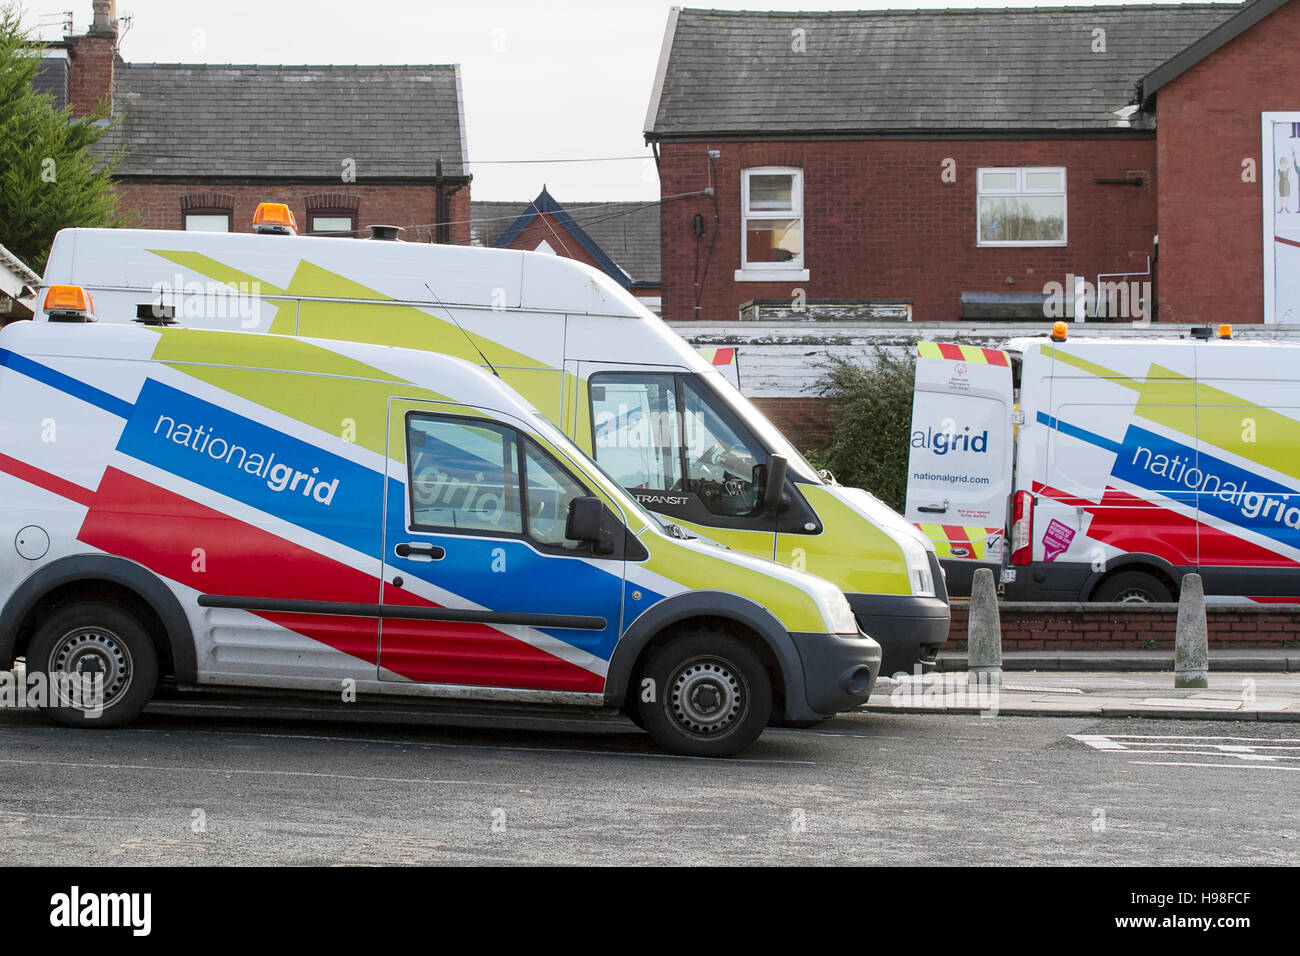 National Grid vans attending to emergency gas leak, Southport, UK - Stock Image